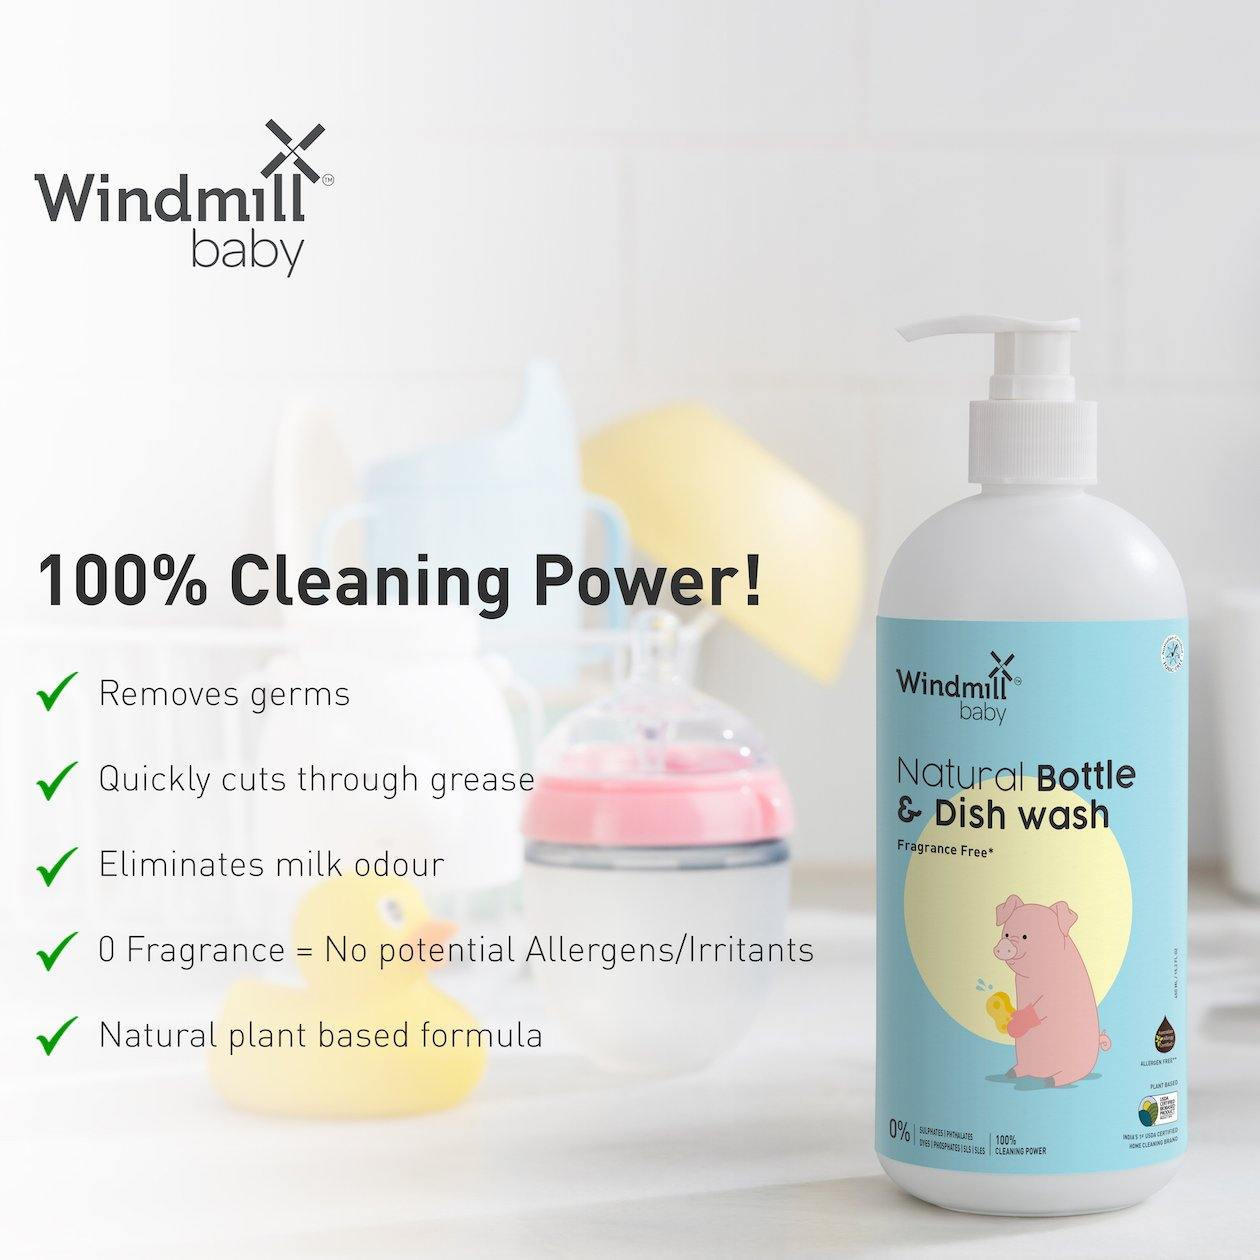 Natural Bottle and Dish Wash - Windmill Baby